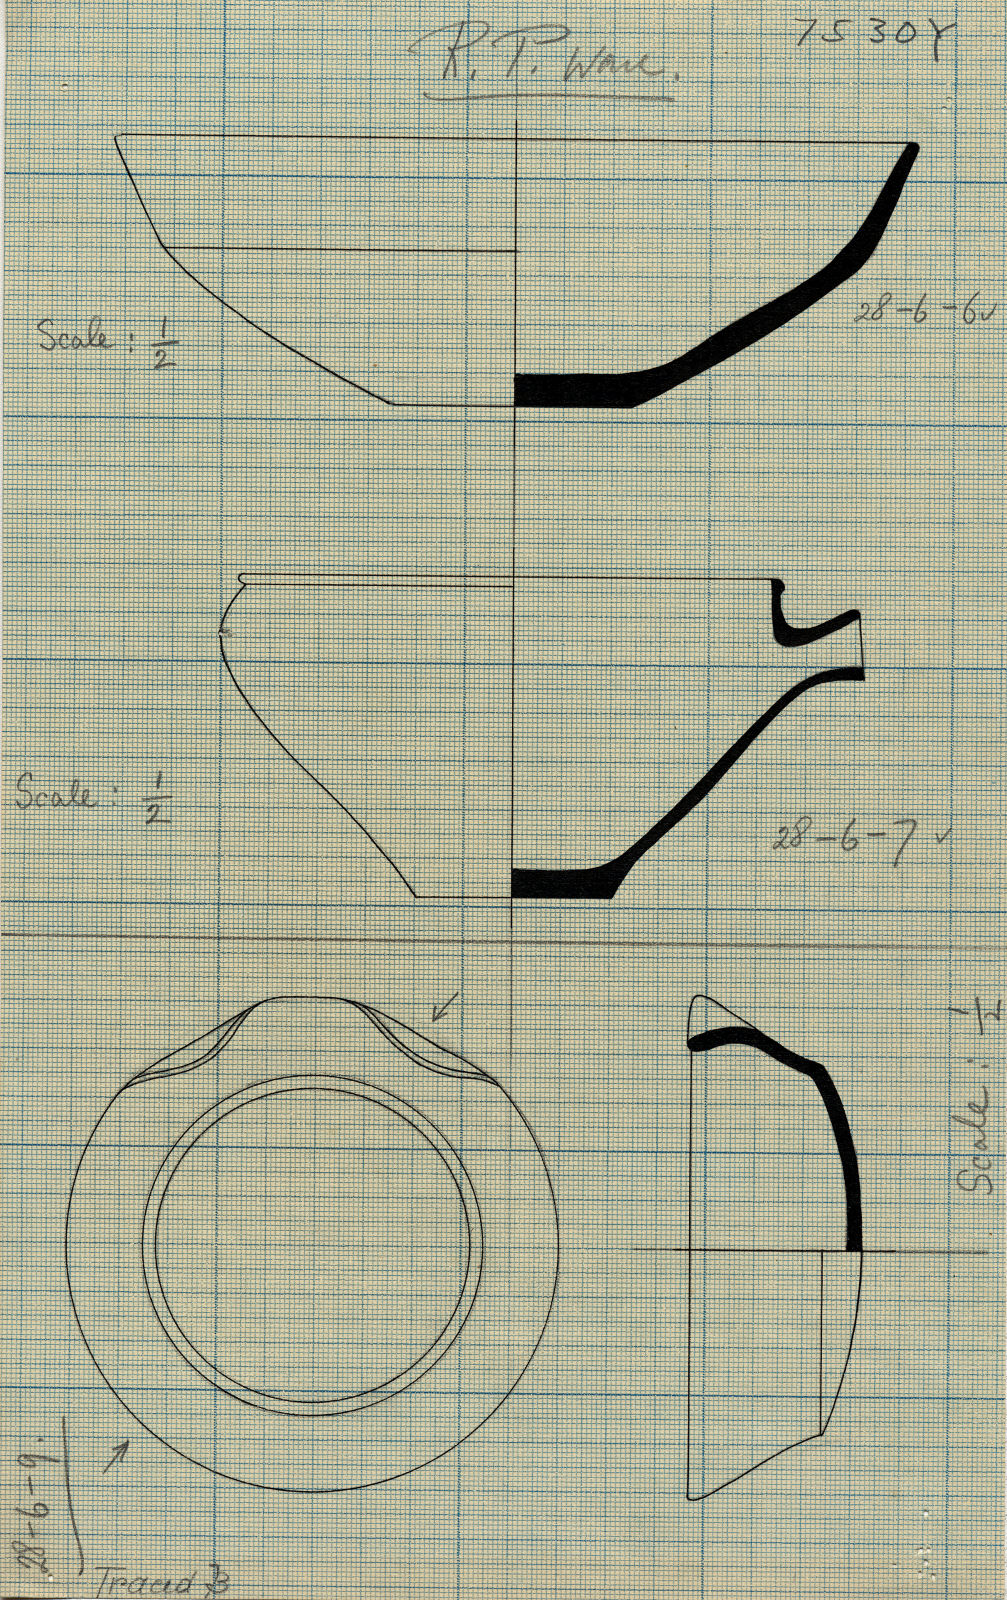 Drawings: G 7530, Shaft Y: pottery